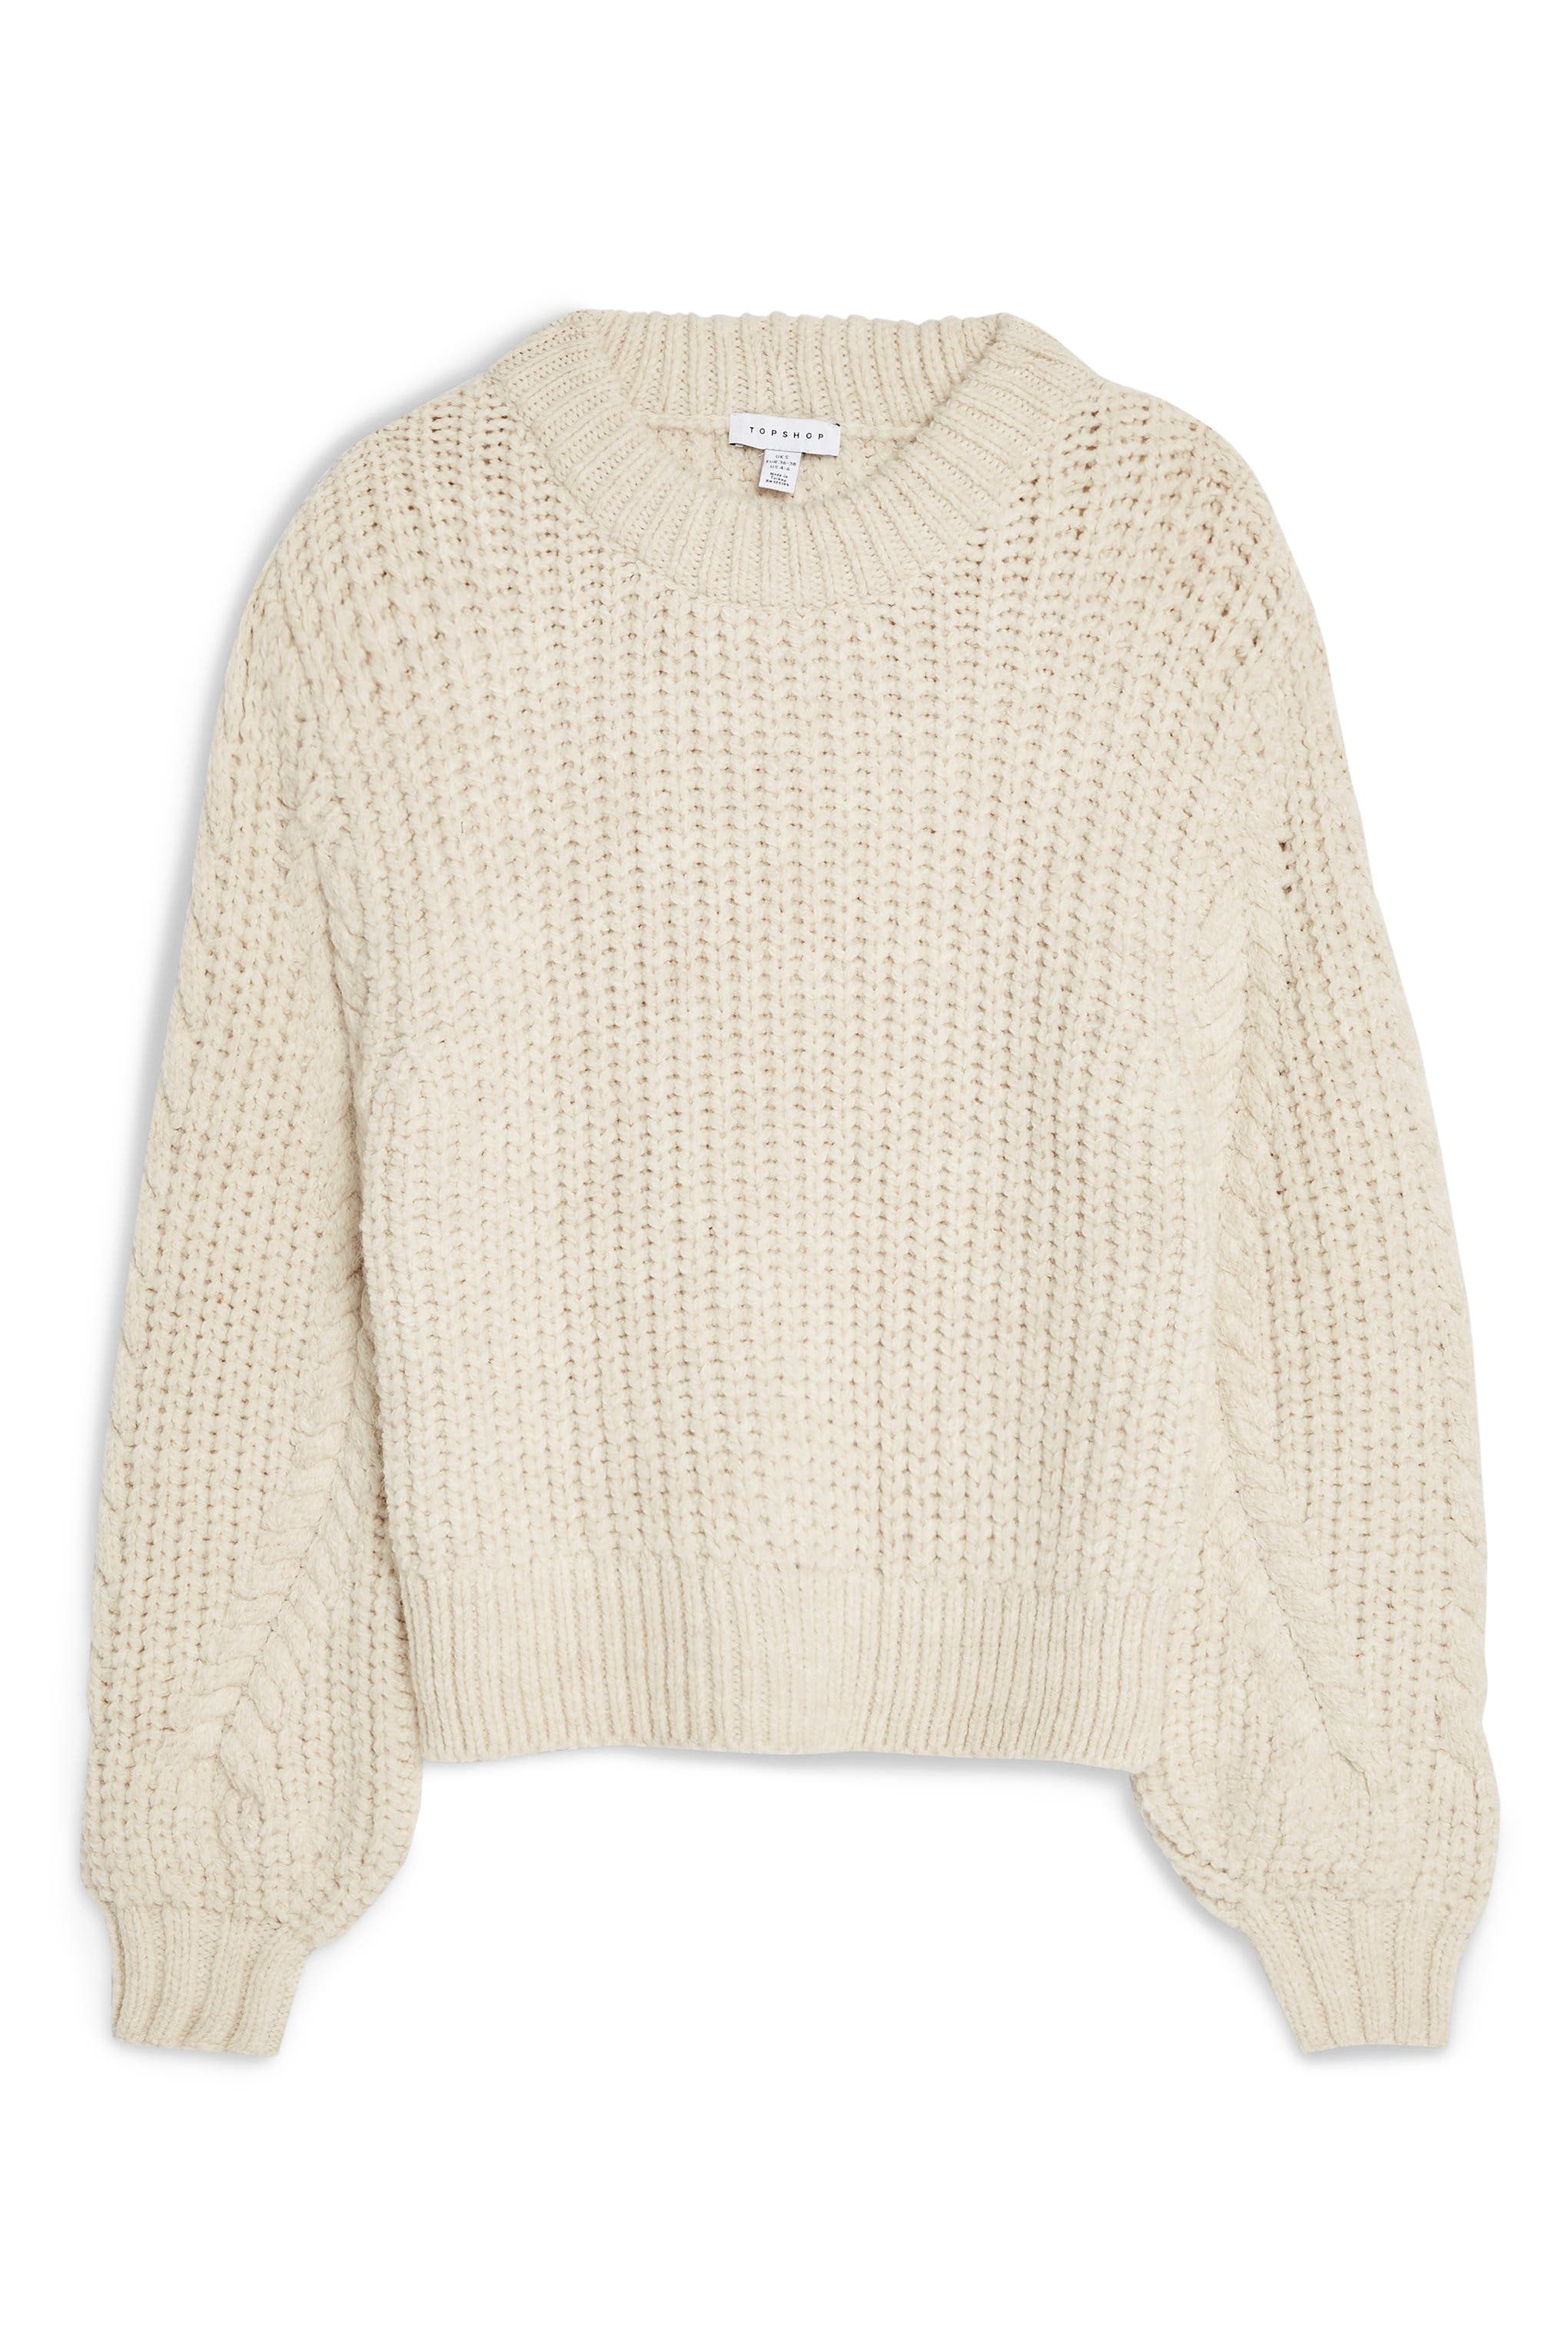 TOPSHOP,                             Bishop Sleeve Cable Knit Sweater,                             Alternate thumbnail 4, color,                             OATMEAL